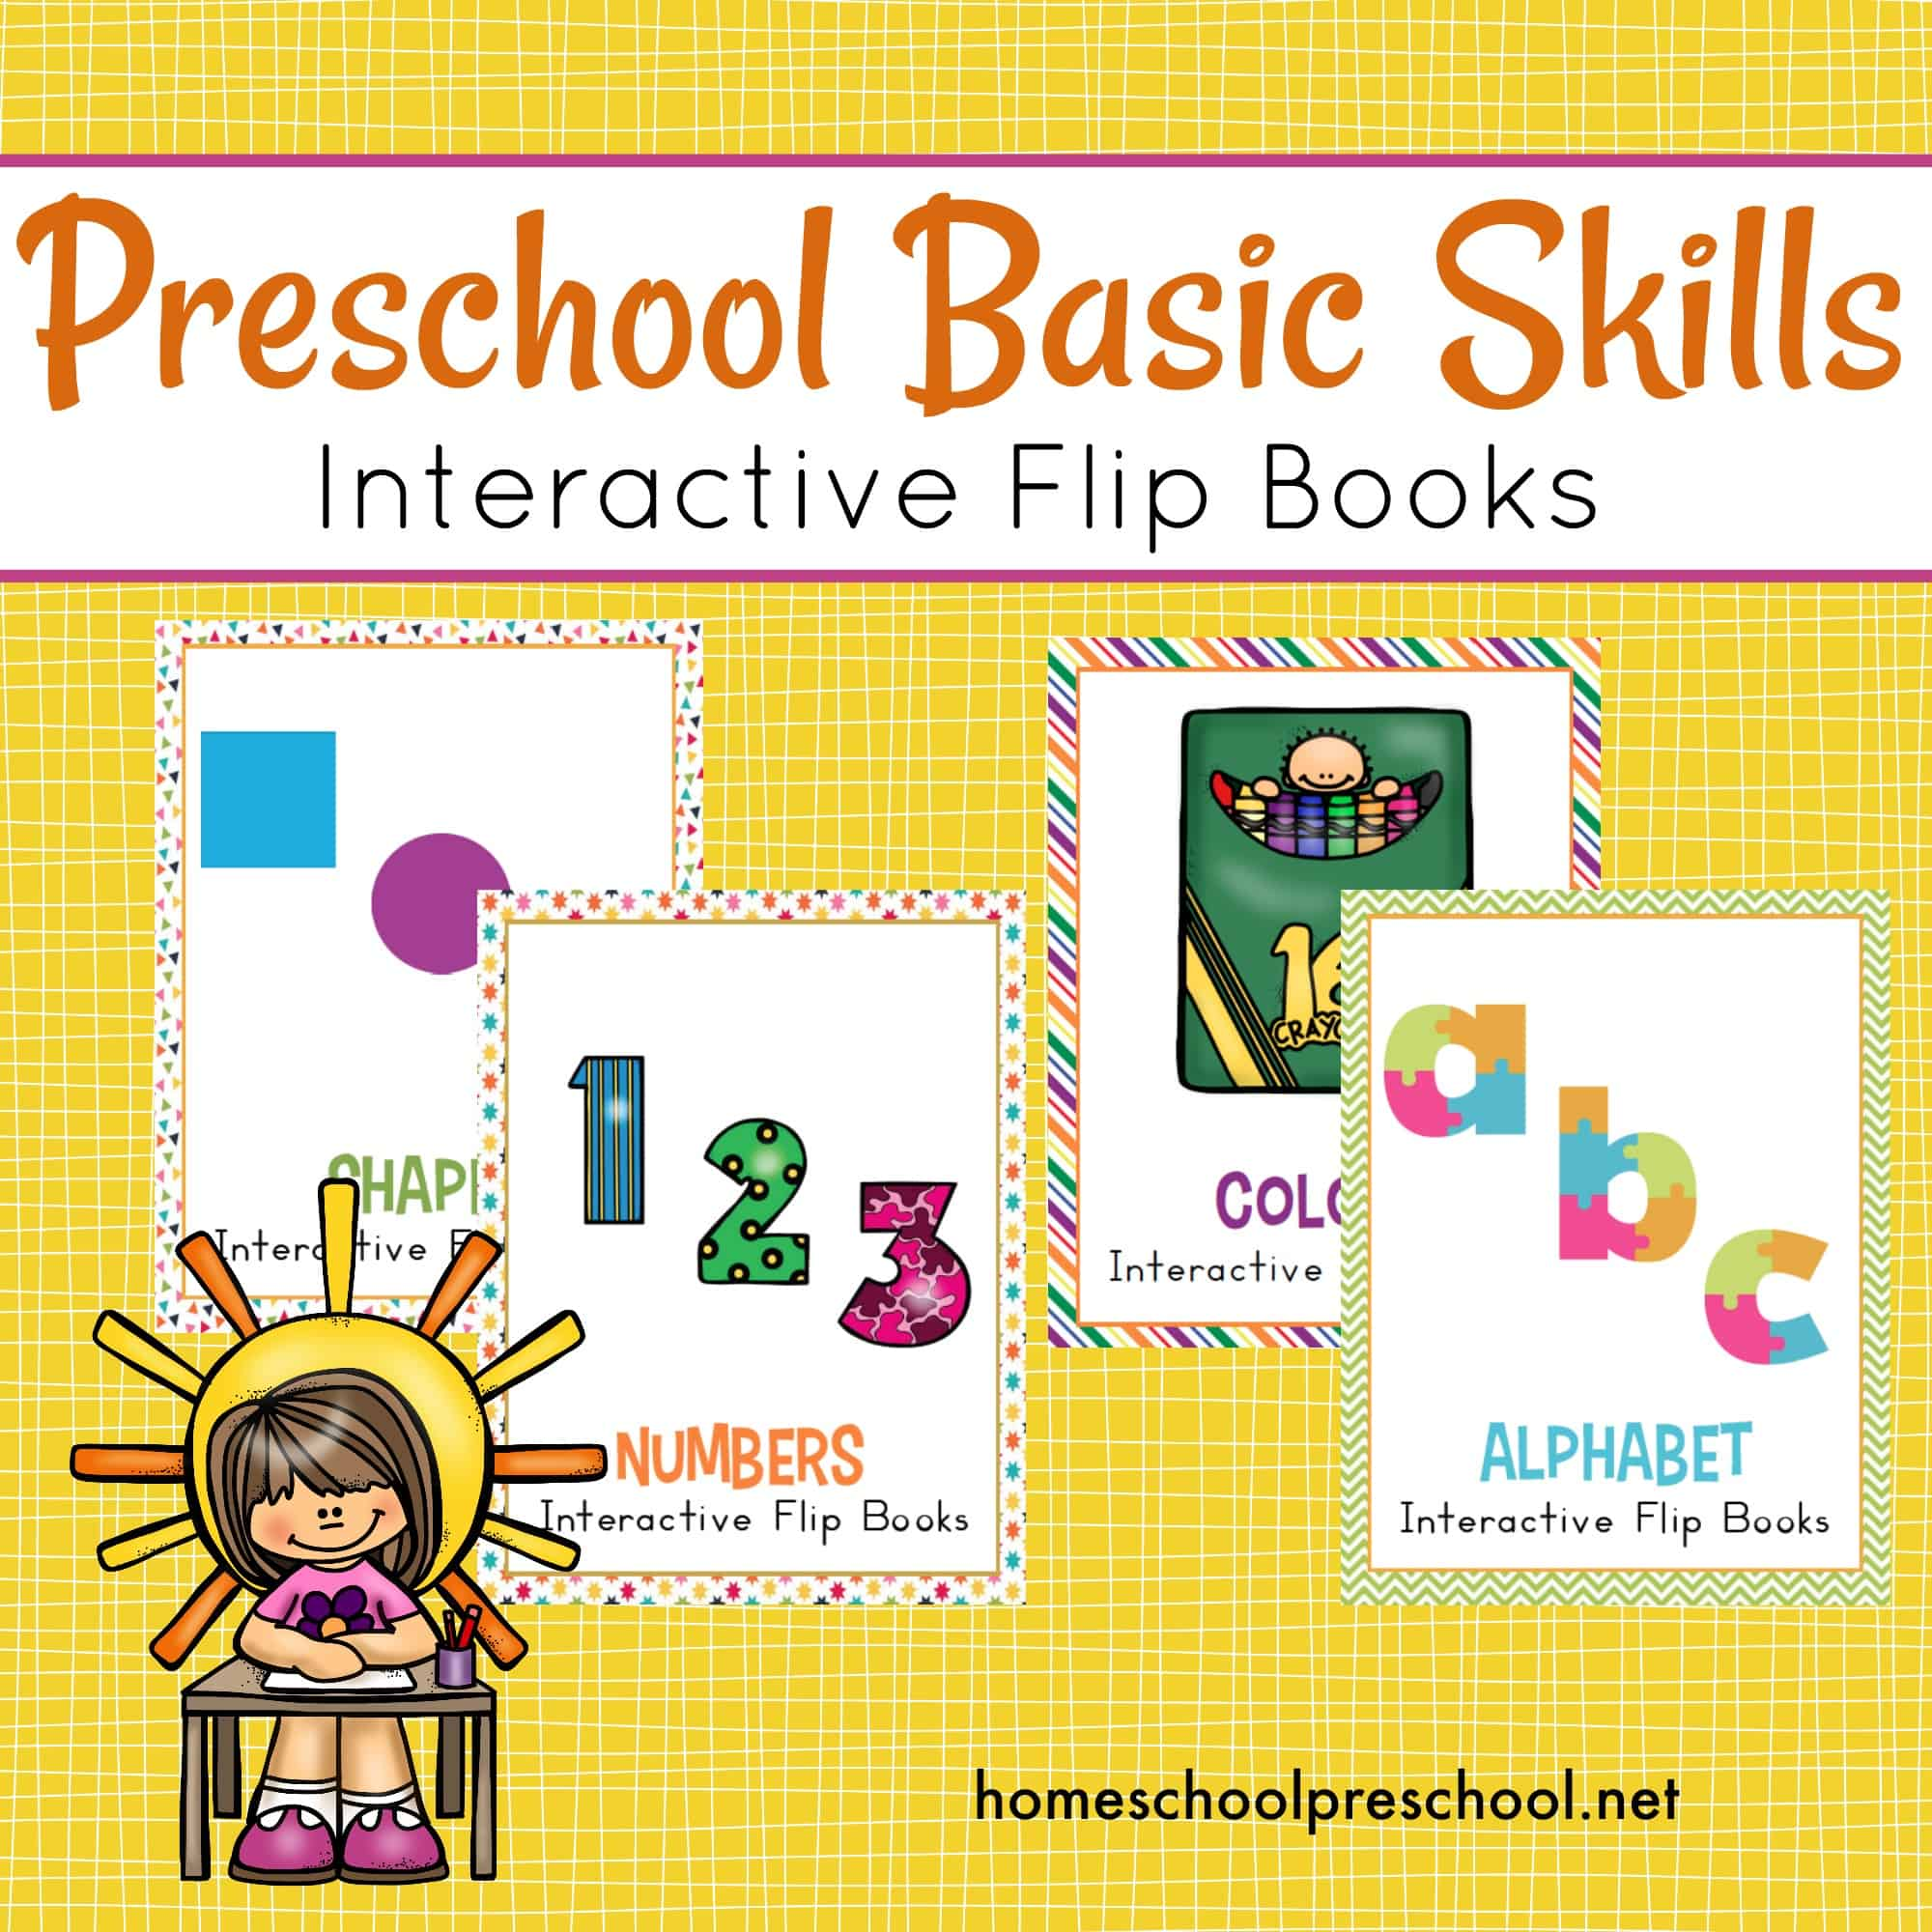 This bundle is perfect for teaching preschool basic skills. Focus on numbers, colors, shapes, and letters with each of the interactive flip books in this bundle.